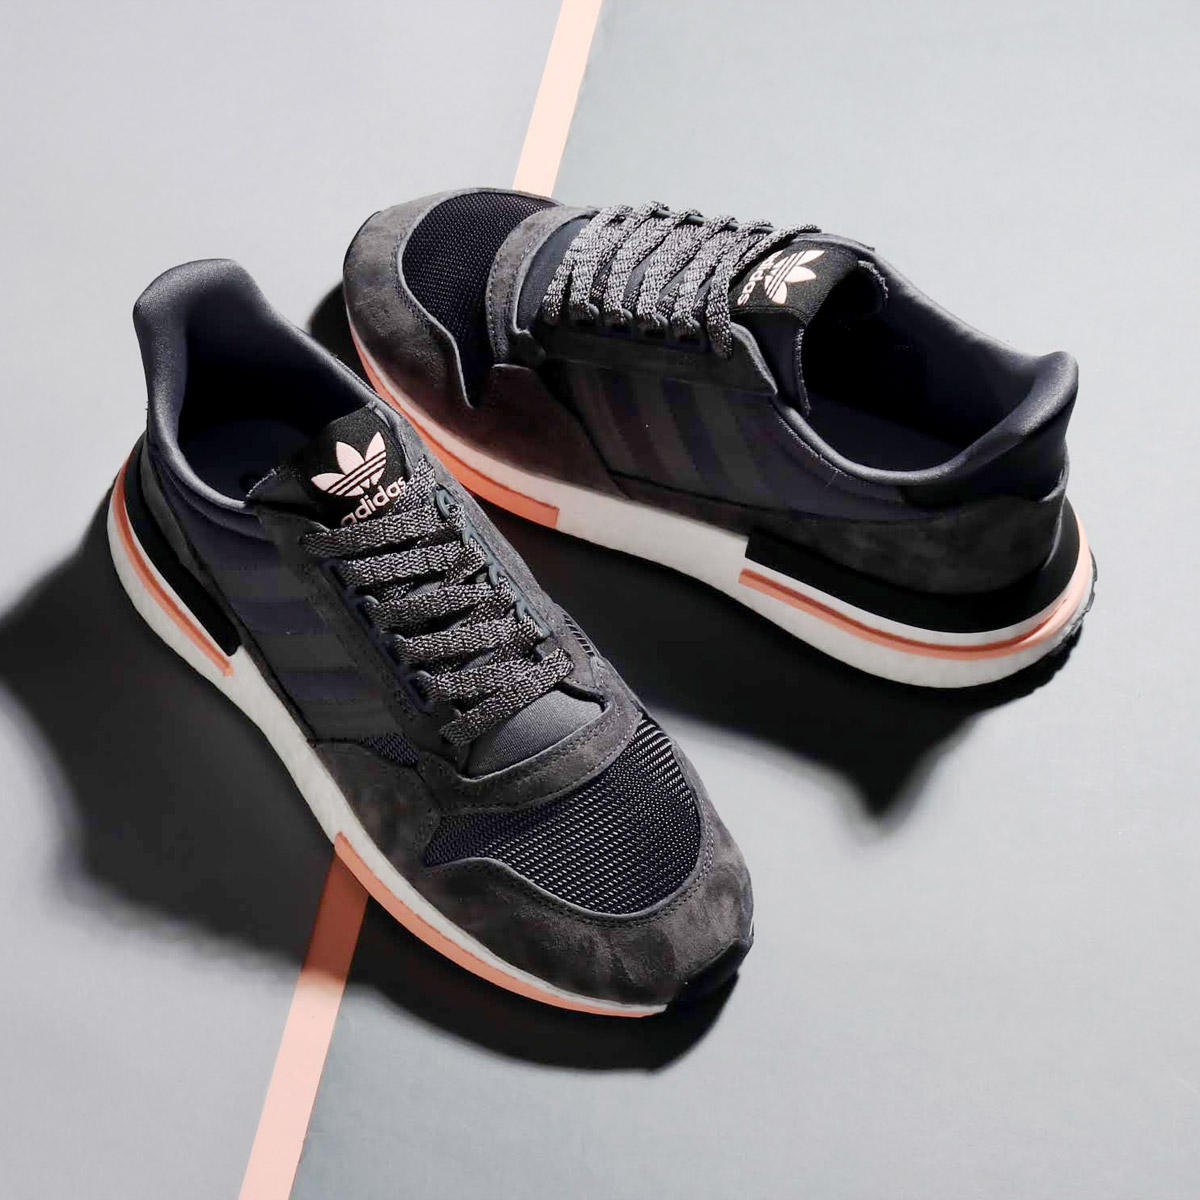 adidas Originals ZX 500 RM (Adidas originals ZX 500 RM) Grey Five/Running White/Clear Orange 18FW-I